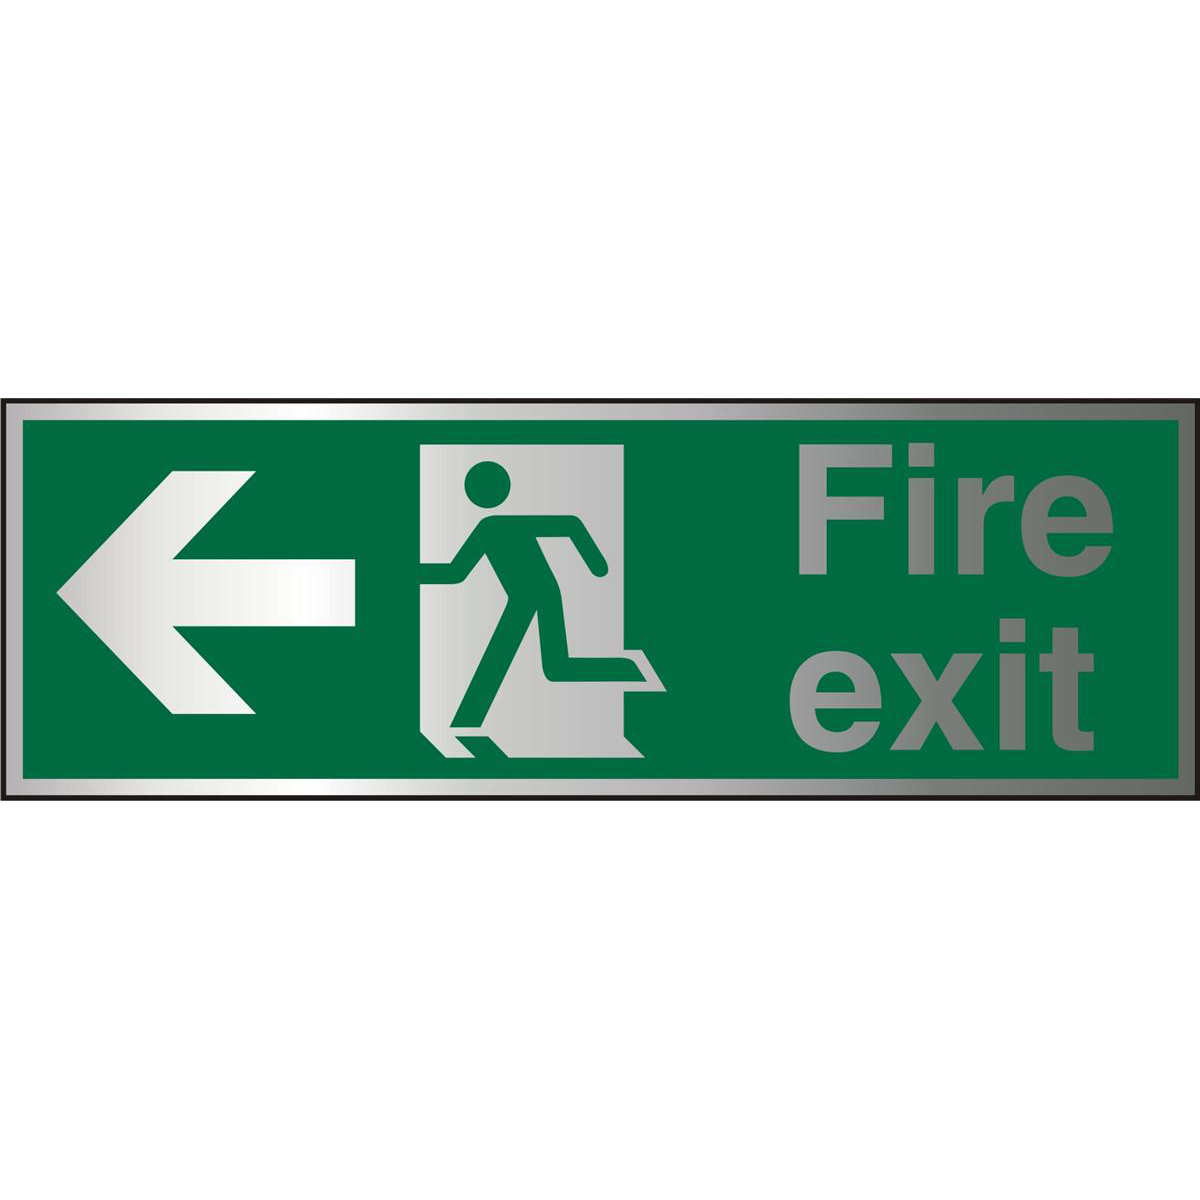 Brushed Alu Sign 1.5mm S/A FireExit Man Running&Arrow Left Ref BASP120450x150 Up to 10 Day Leadtime